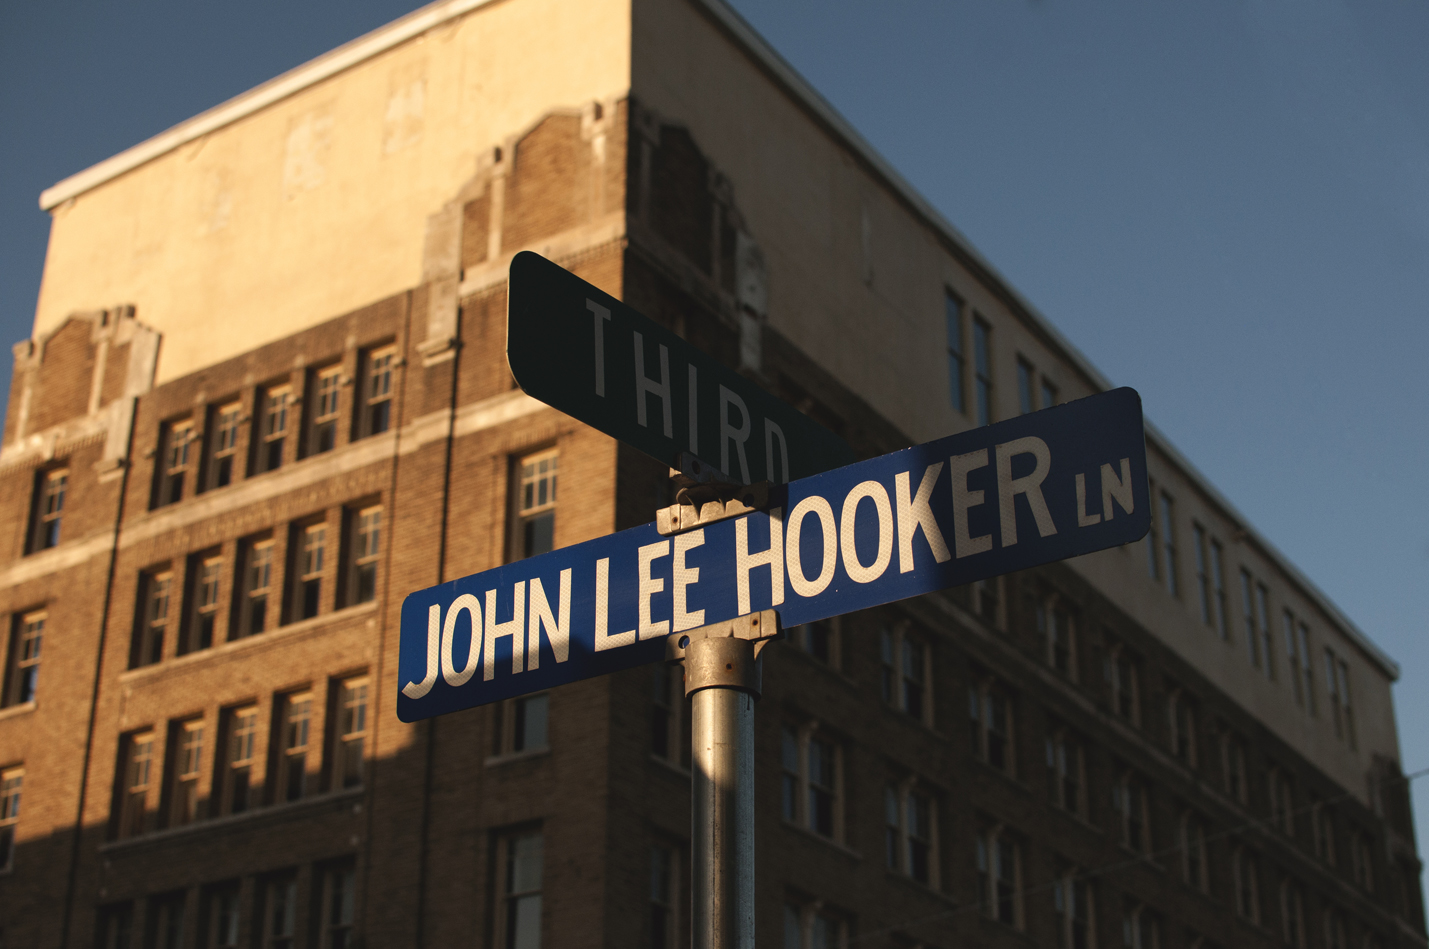 John Lee Hooker Sign_Blues Pilgrimage in Clarksdale_Mississippi_April 2014_Photo by Cheyenne Rae